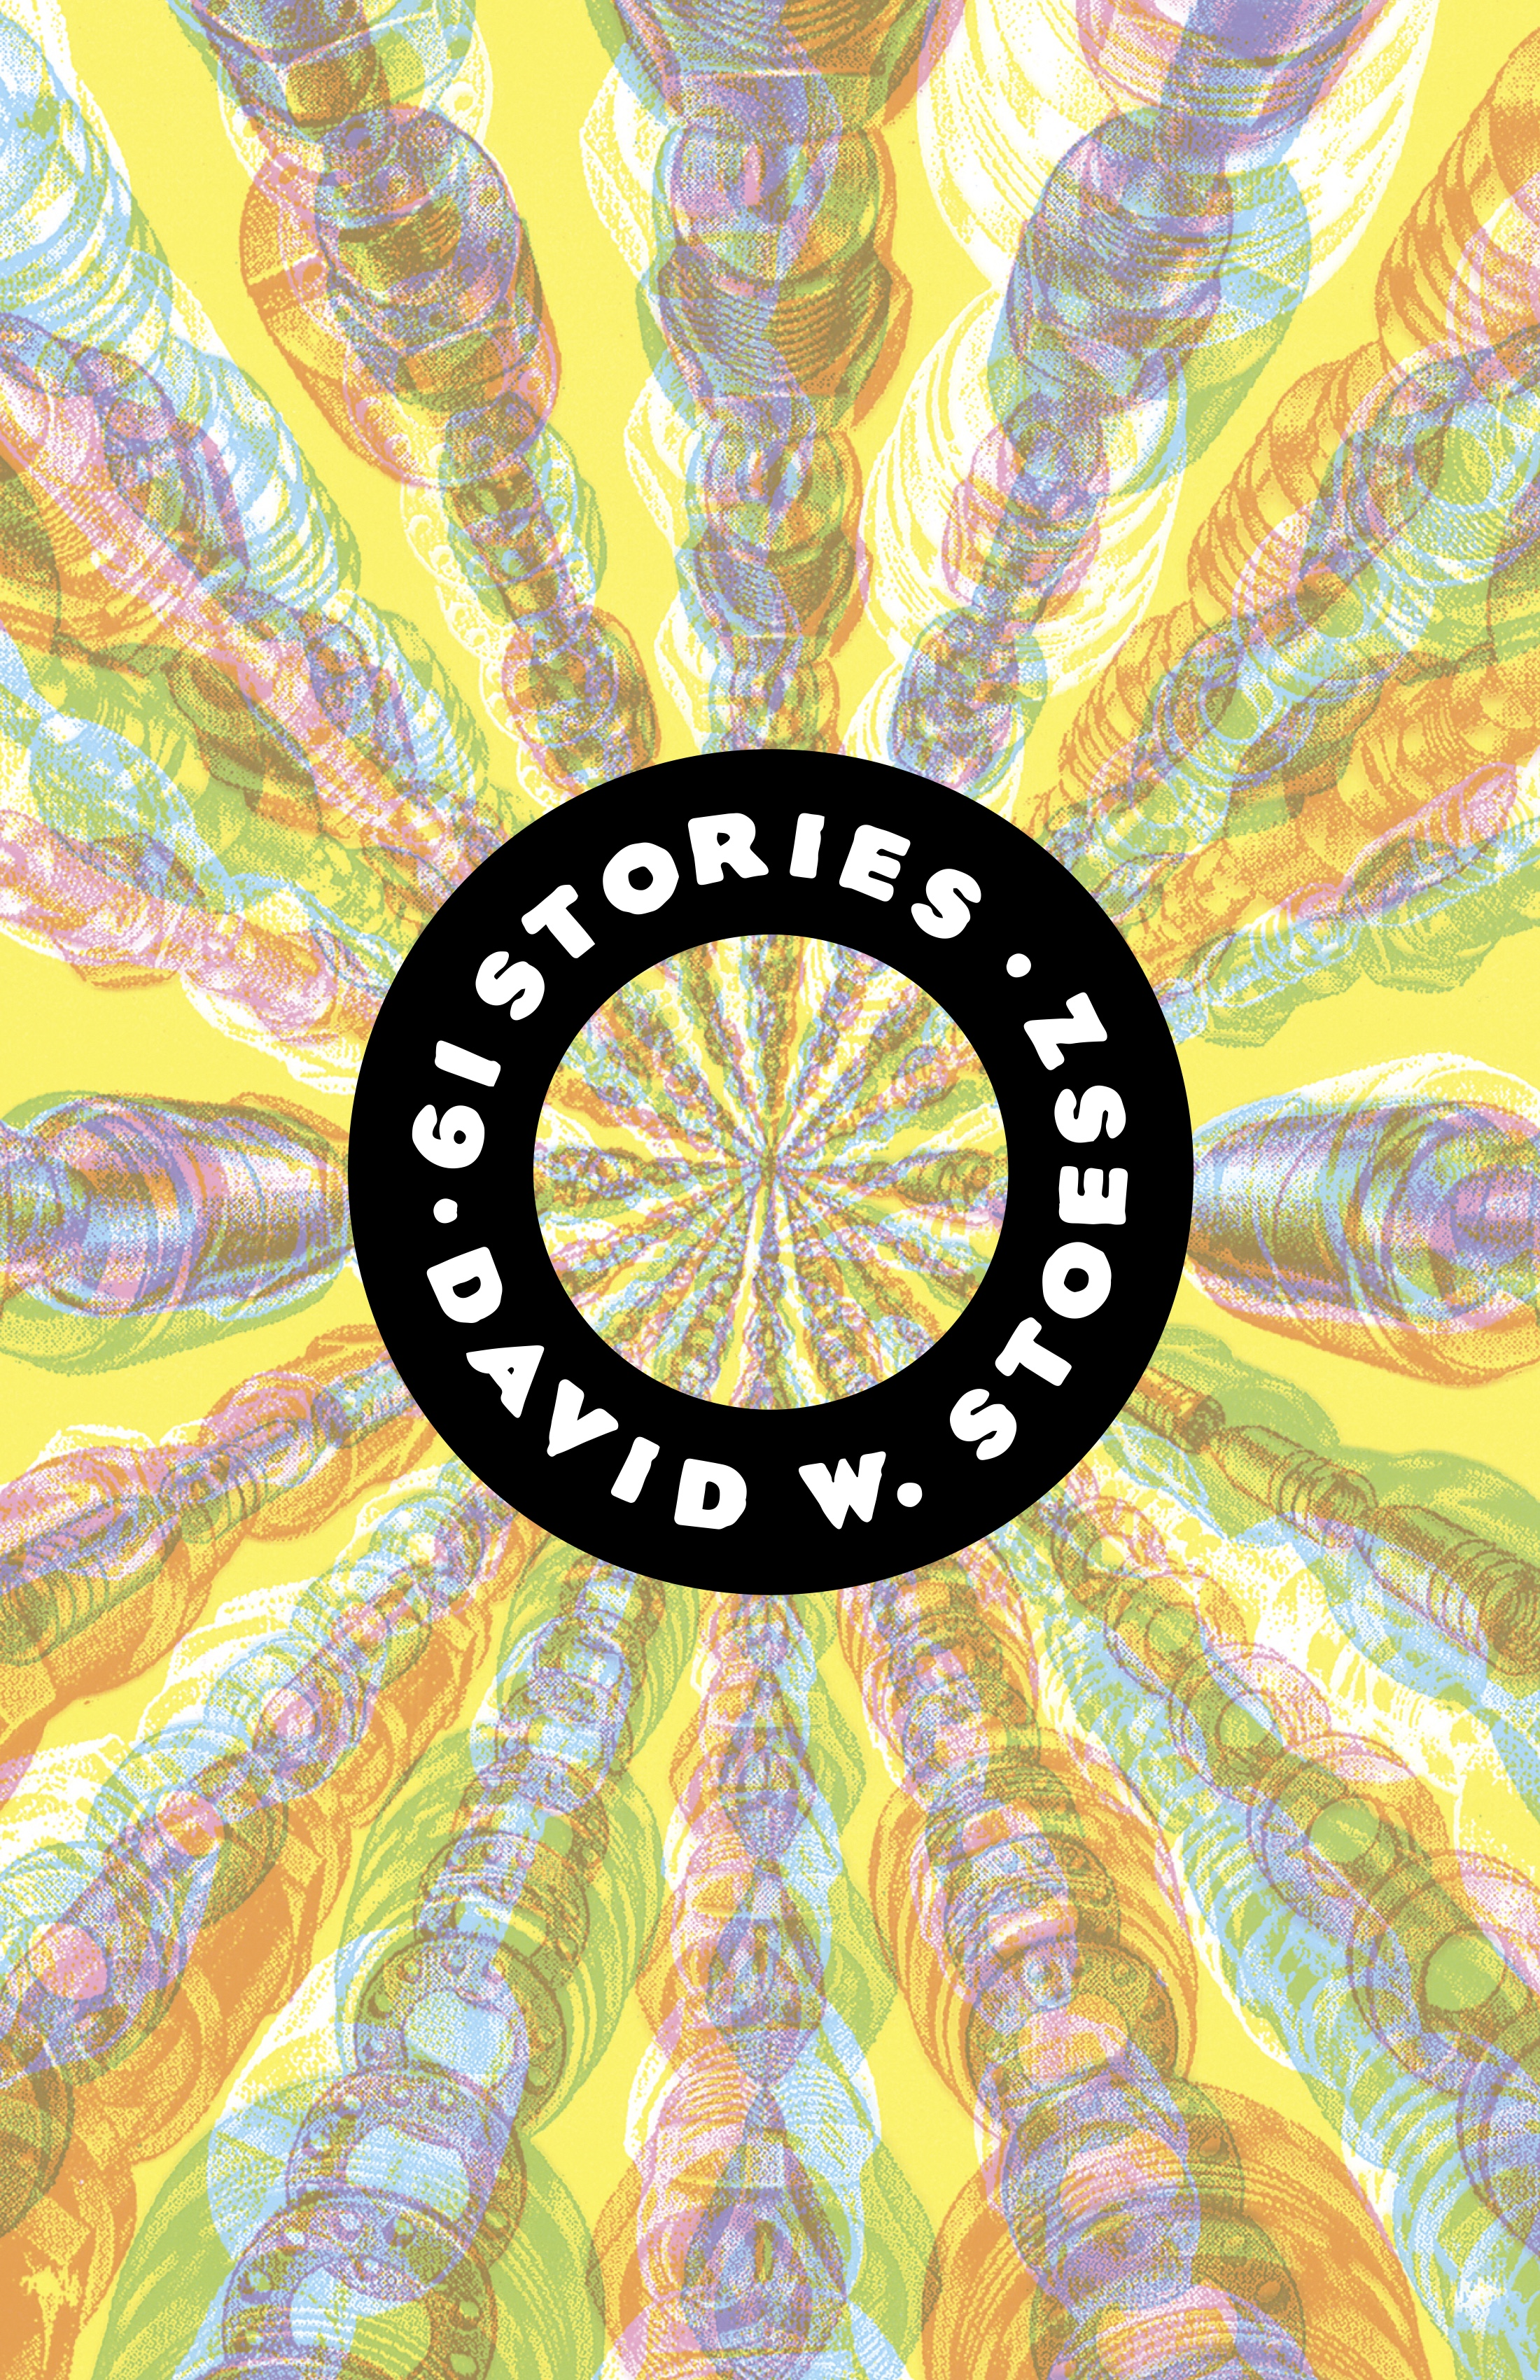 61 Stories - Zine and Kindle edition of some very short stories. Cover by Art Chantry. Physical copies available at Elliott Bay Book Company and Kuhlman Men's and Women's Clothing in Belltown.